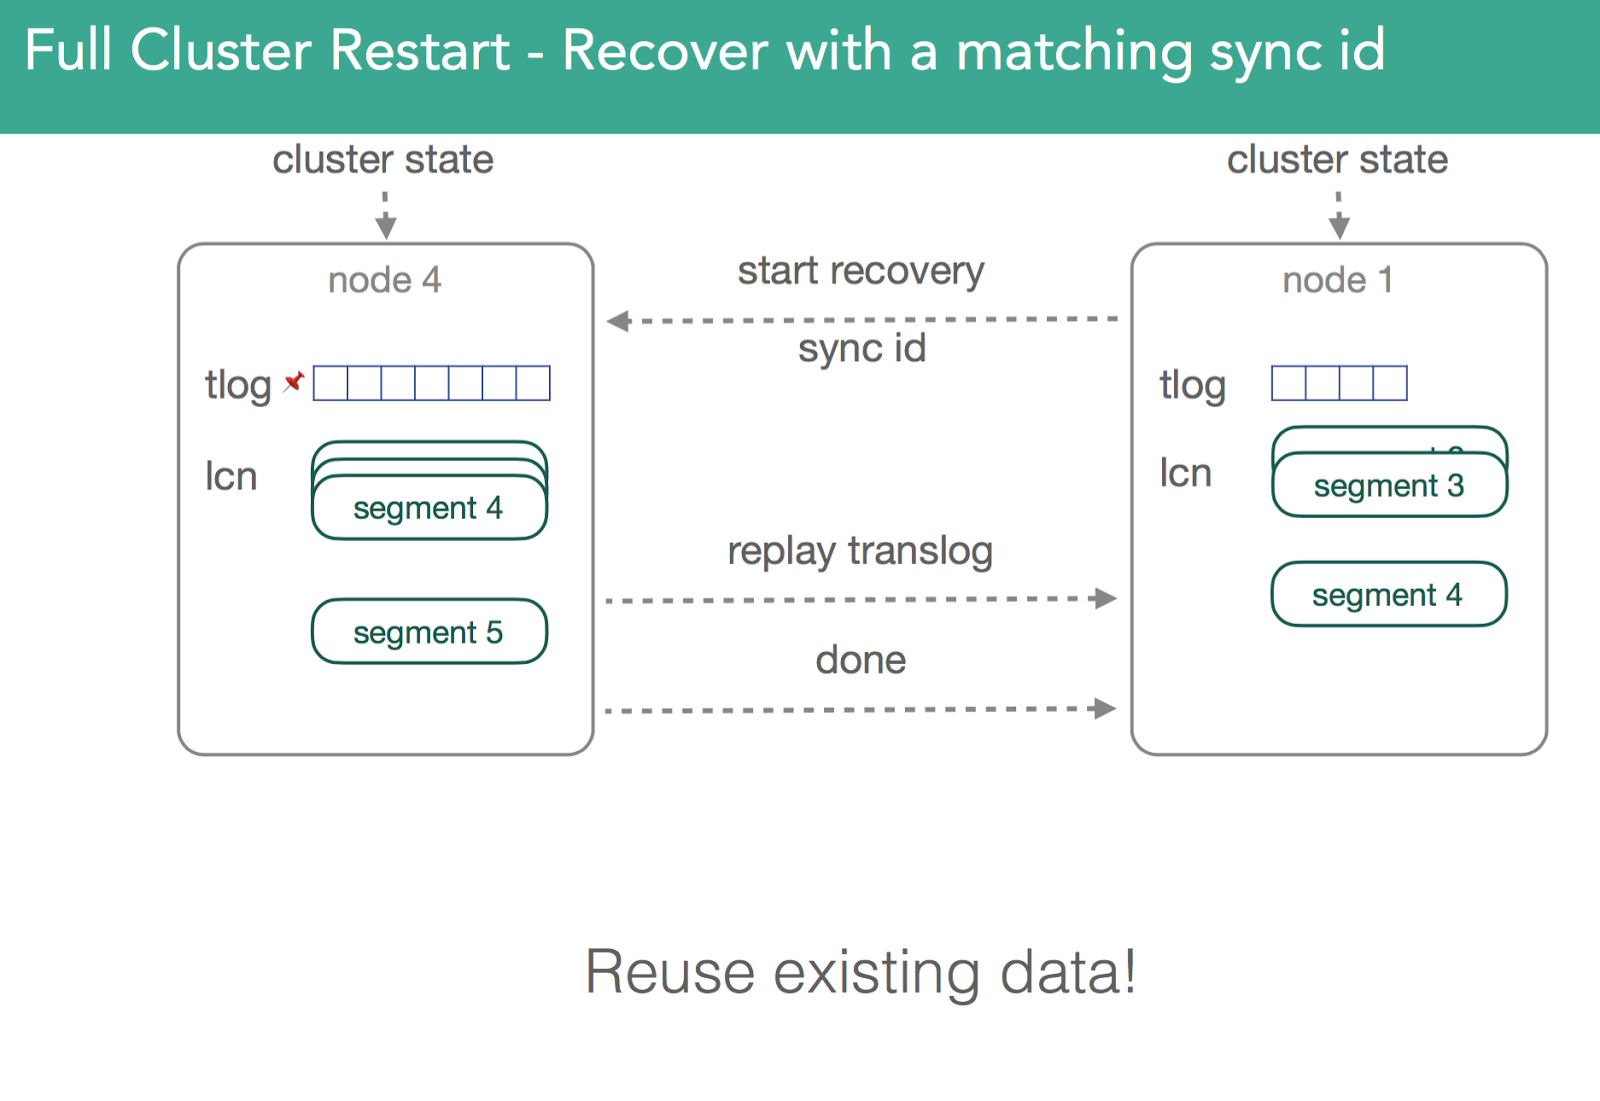 Full Cluster Restart - Recover with a matching sync id